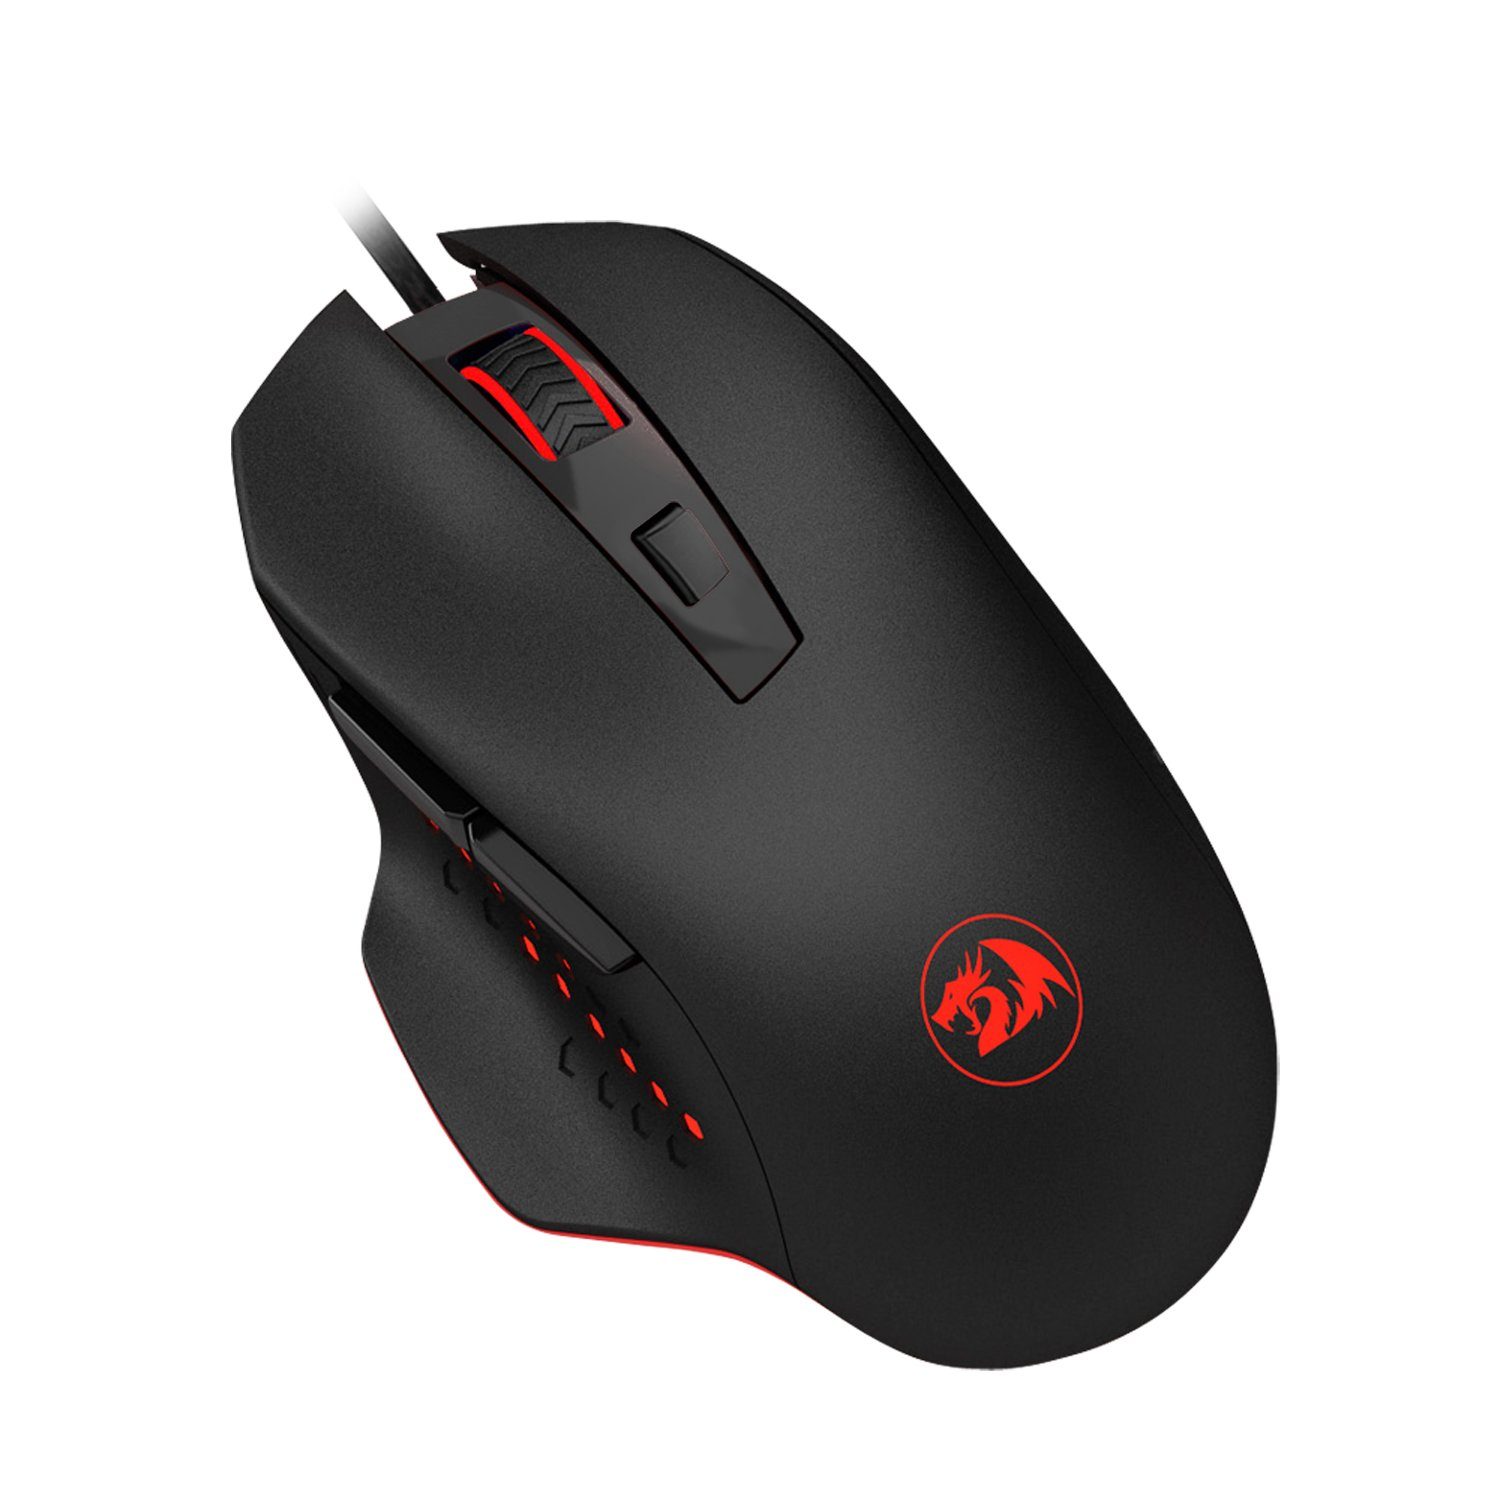 Mouse Gamer Redragon Gainer - 3200 DPI